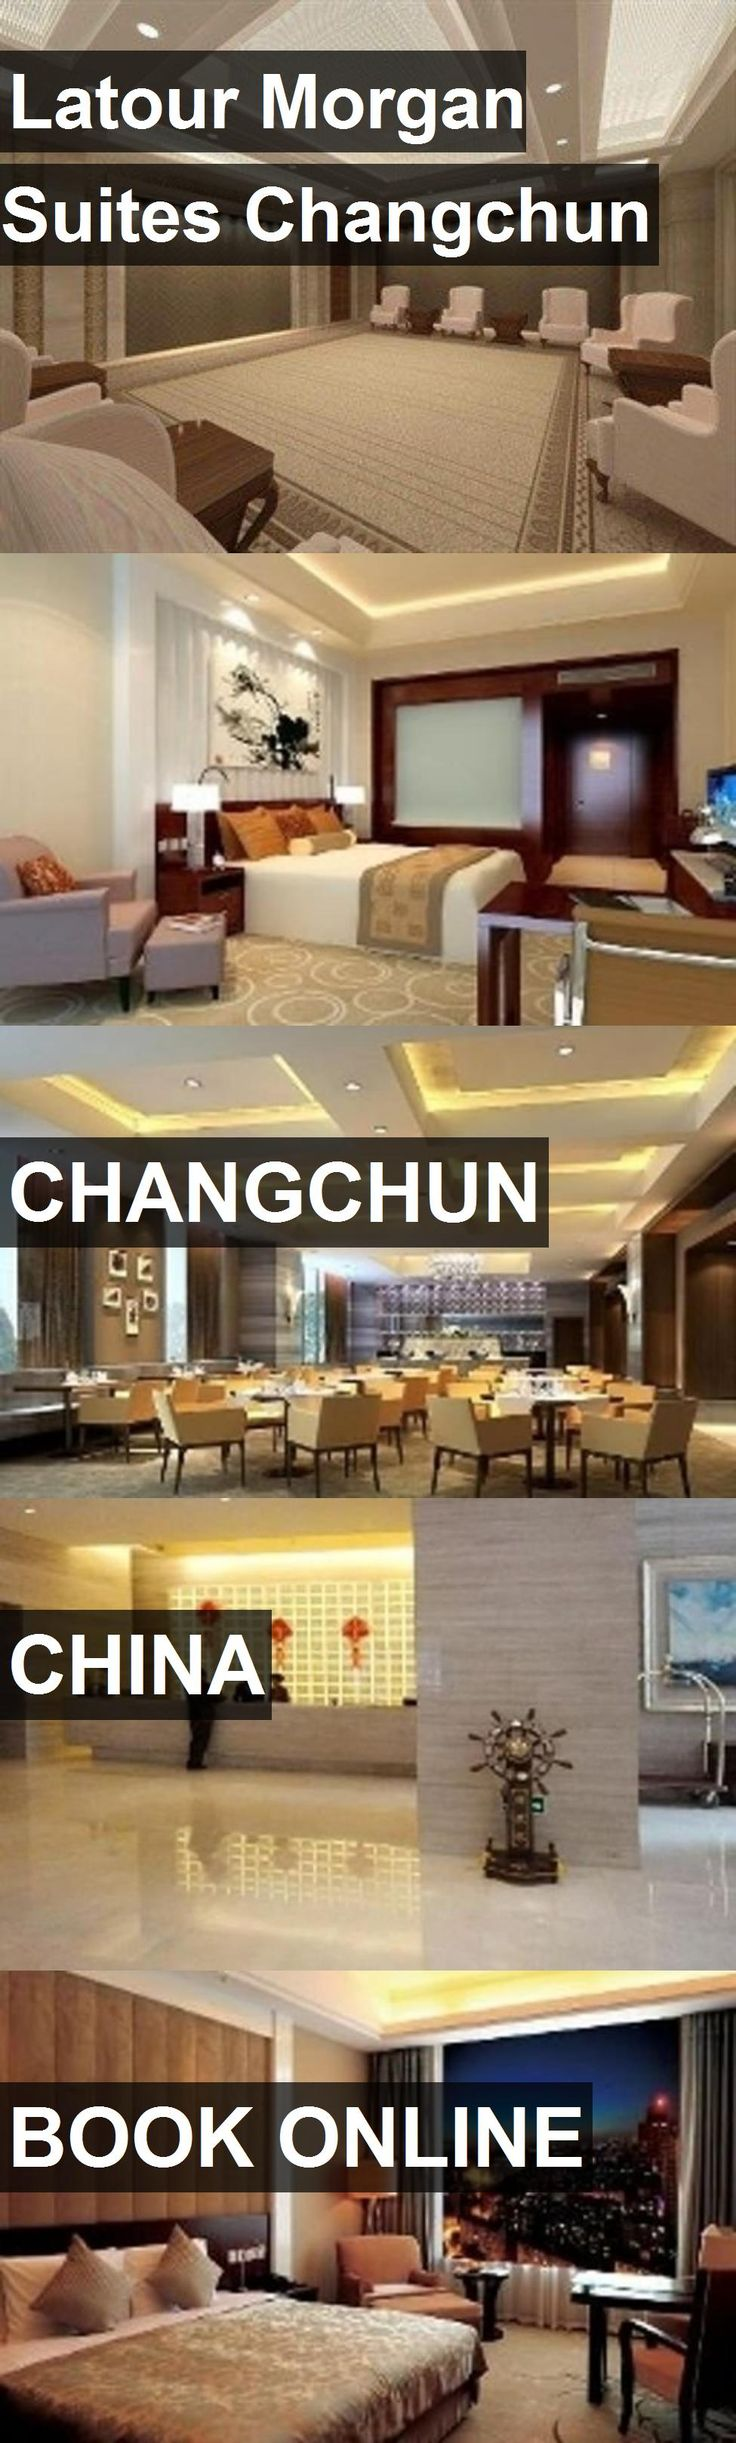 Hotel Latour Morgan Suites Changchun in Changchun, China. For more information, photos, reviews and best prices please follow the link. #China #Changchun #travel #vacation #hotel